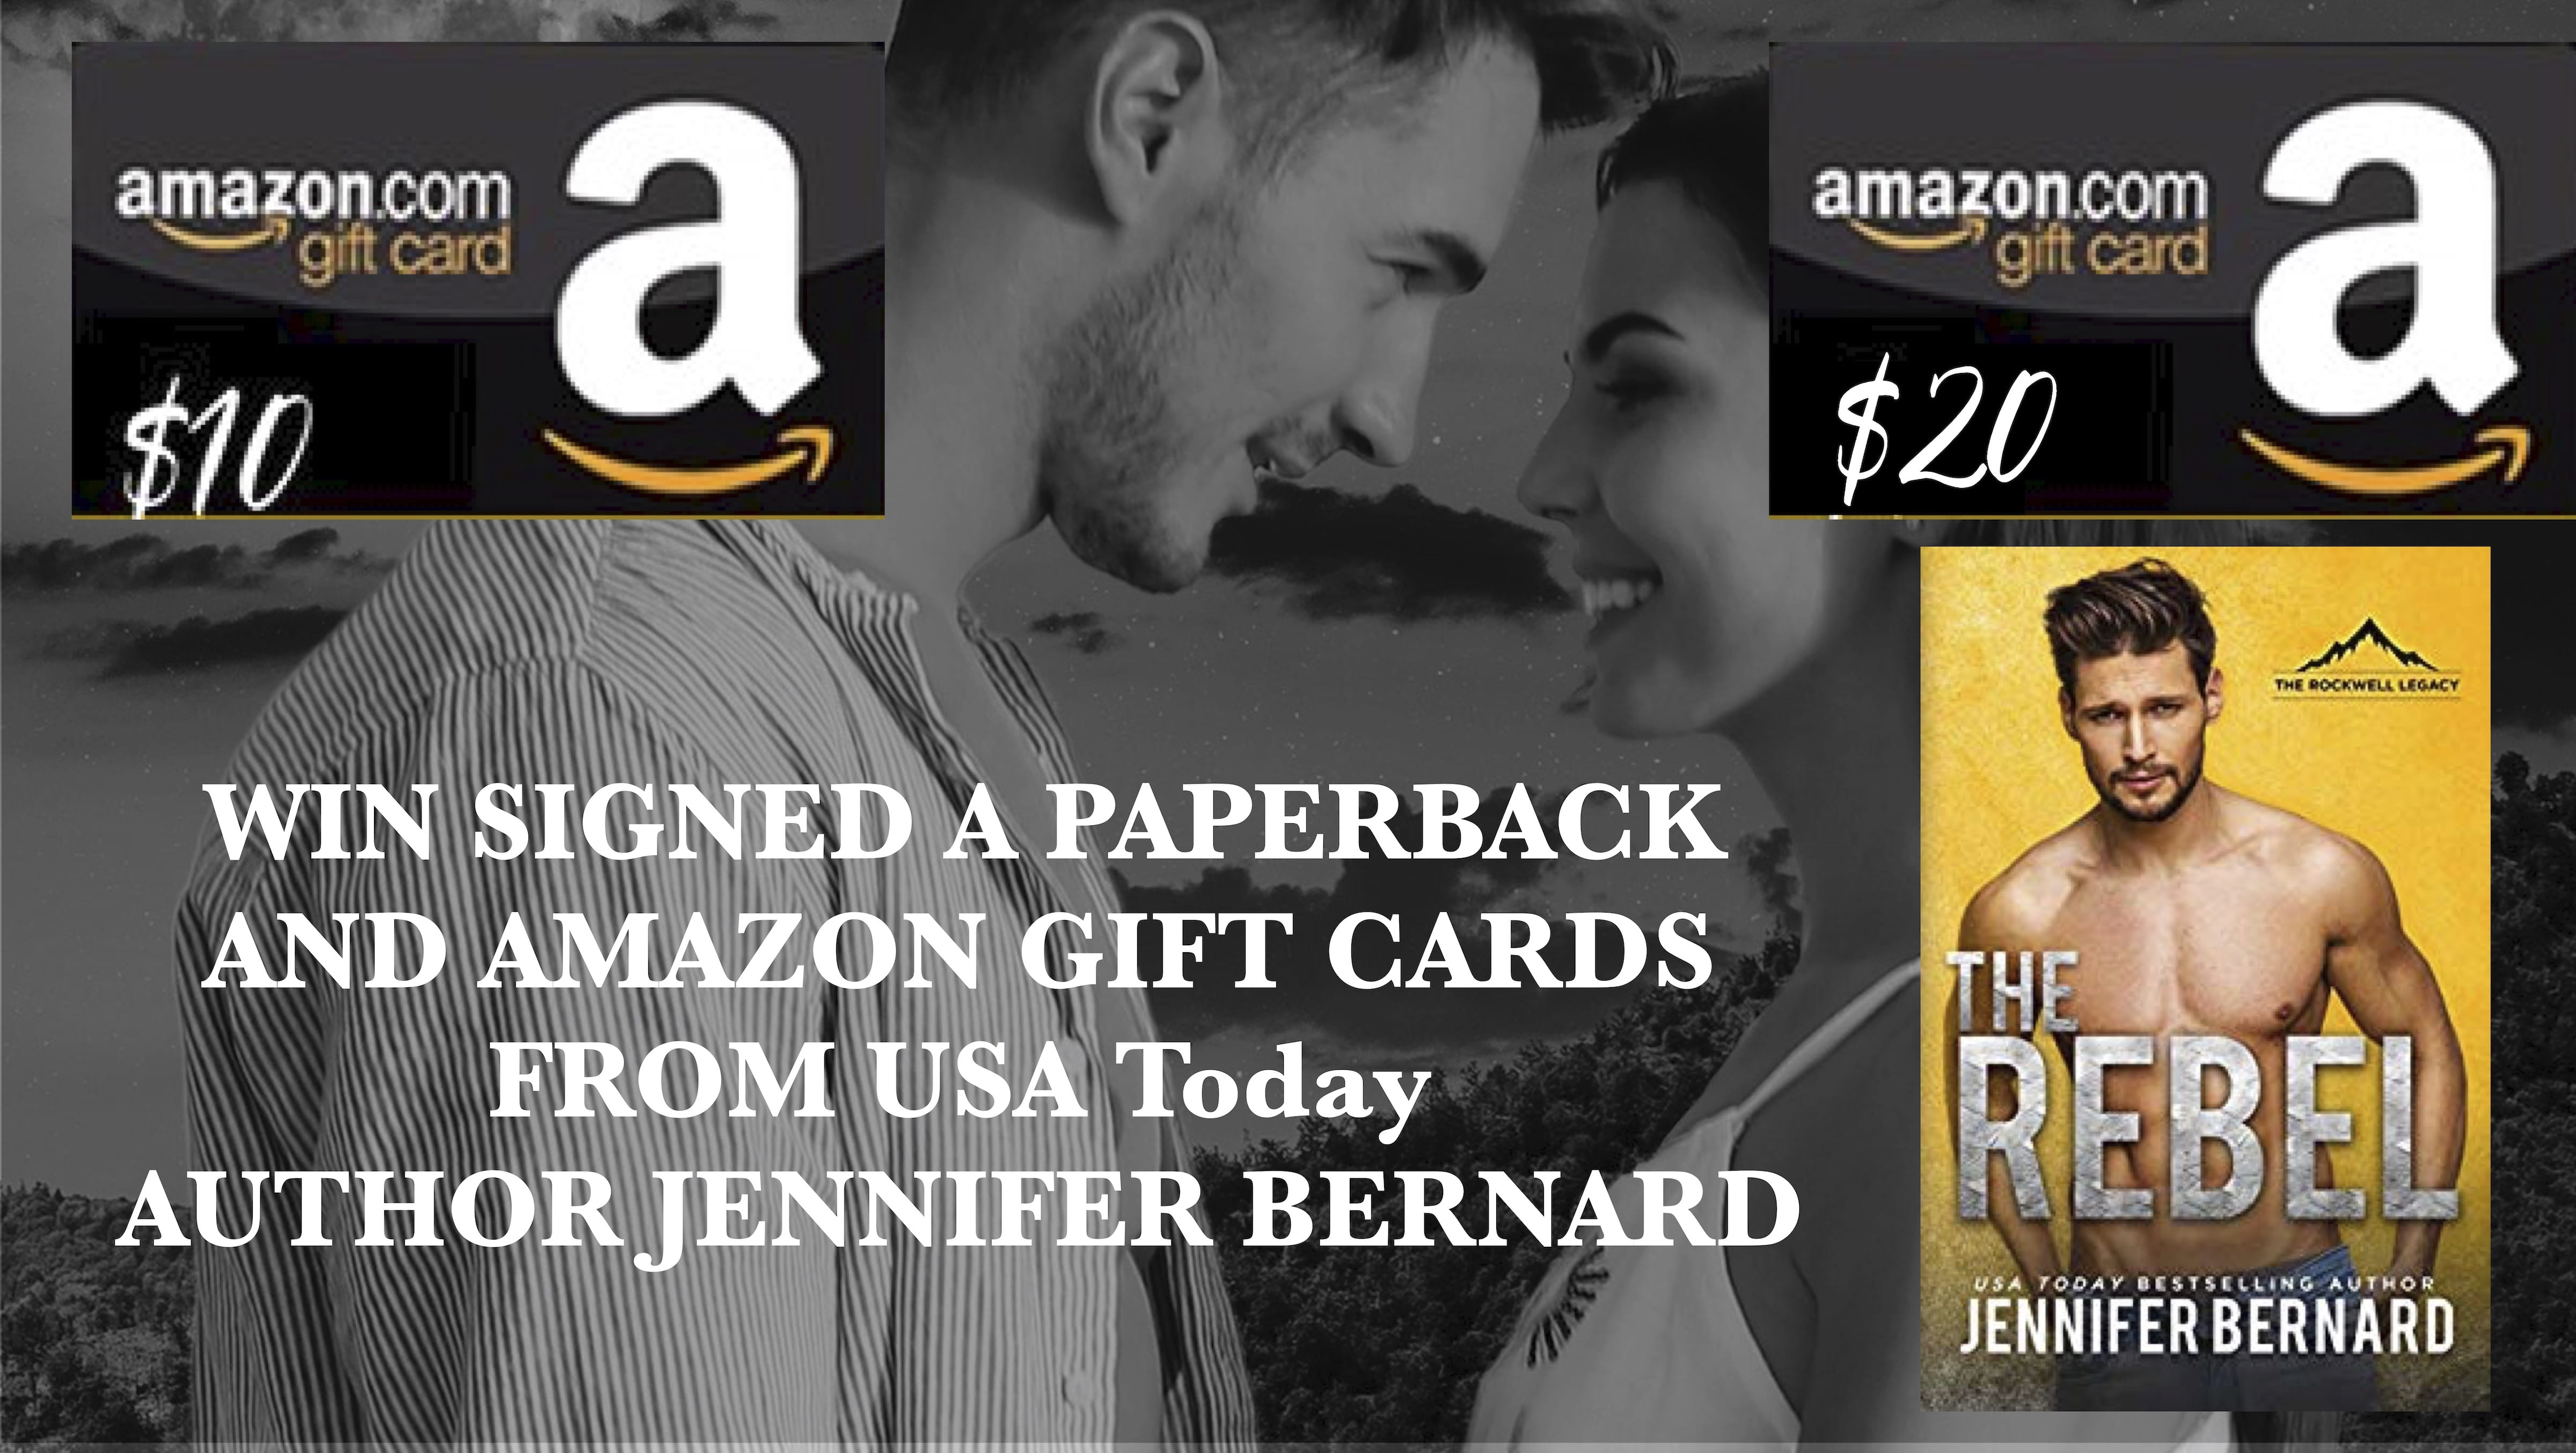 Enter to Win Prizes from USA TODAY Bestselling Author Jennifer Bernard